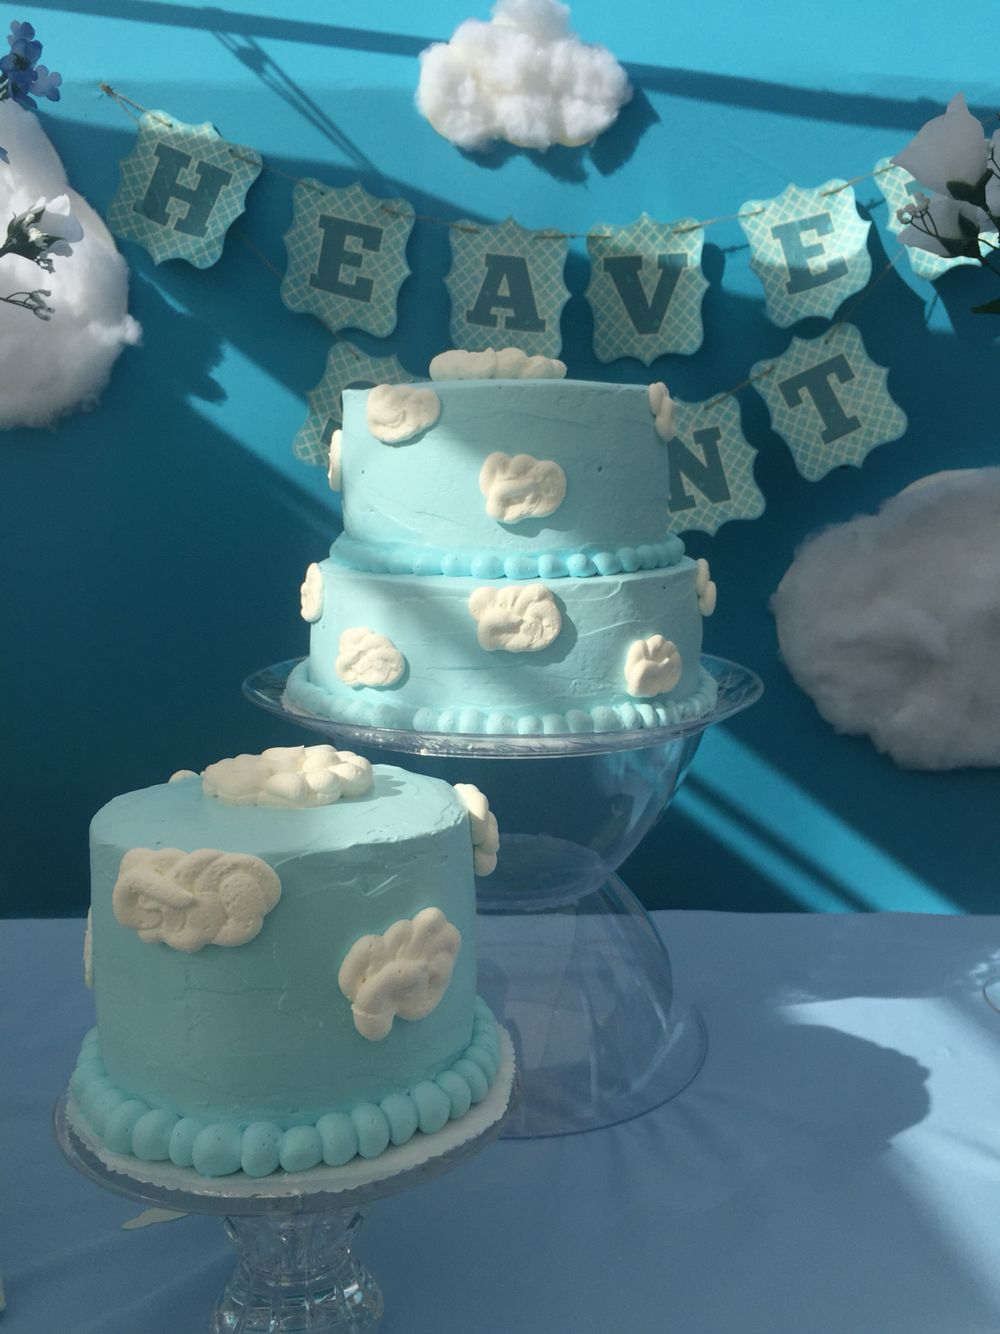 Heaven sent cake blue and white Clouds